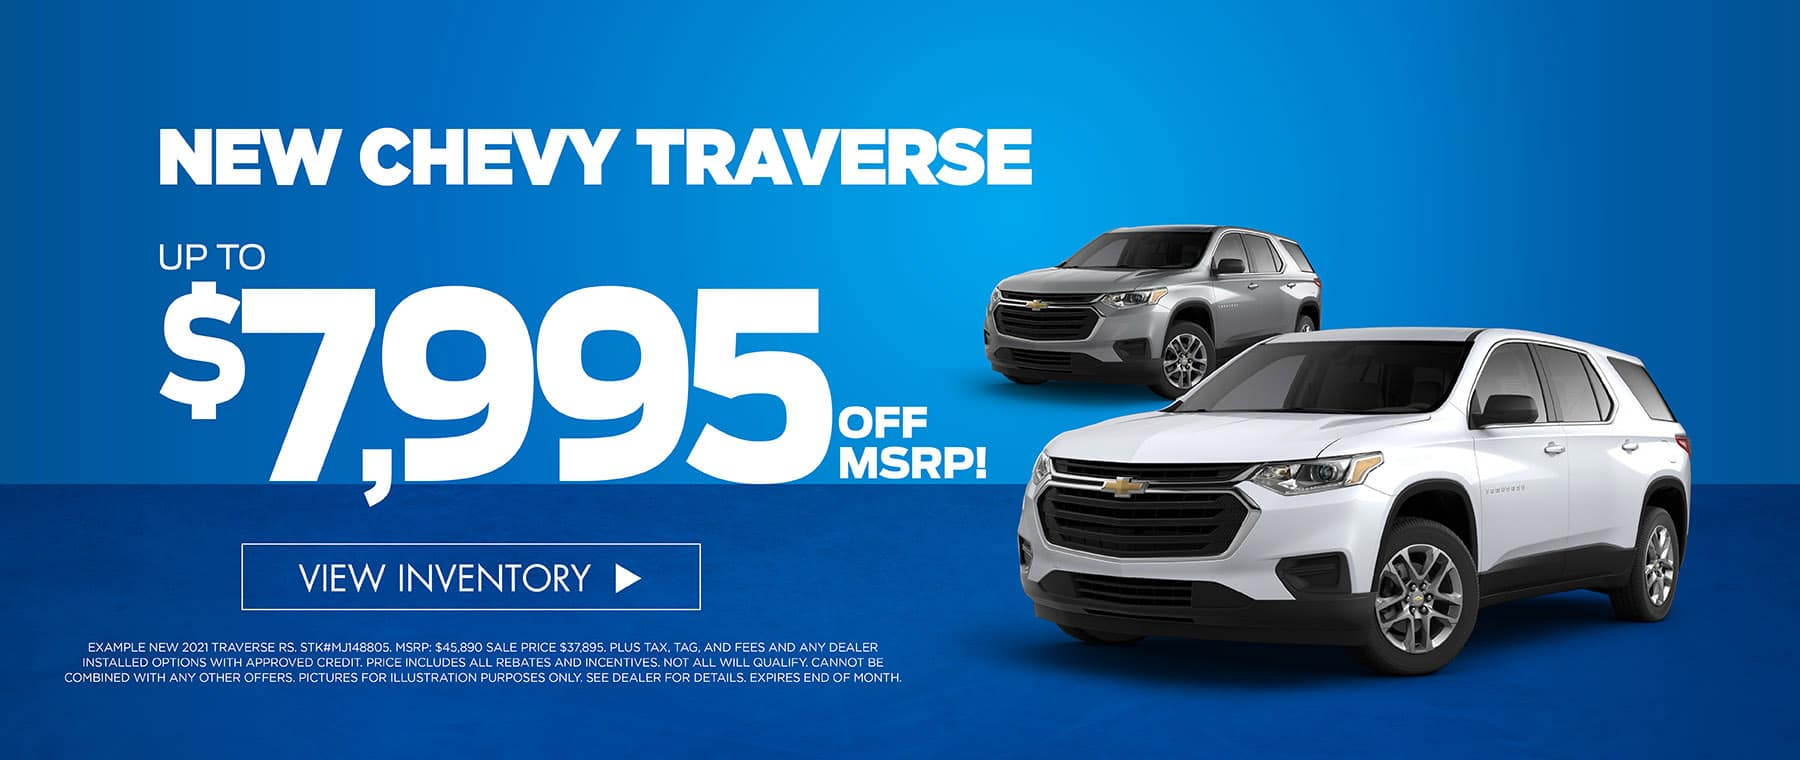 Traverse - New Chevy